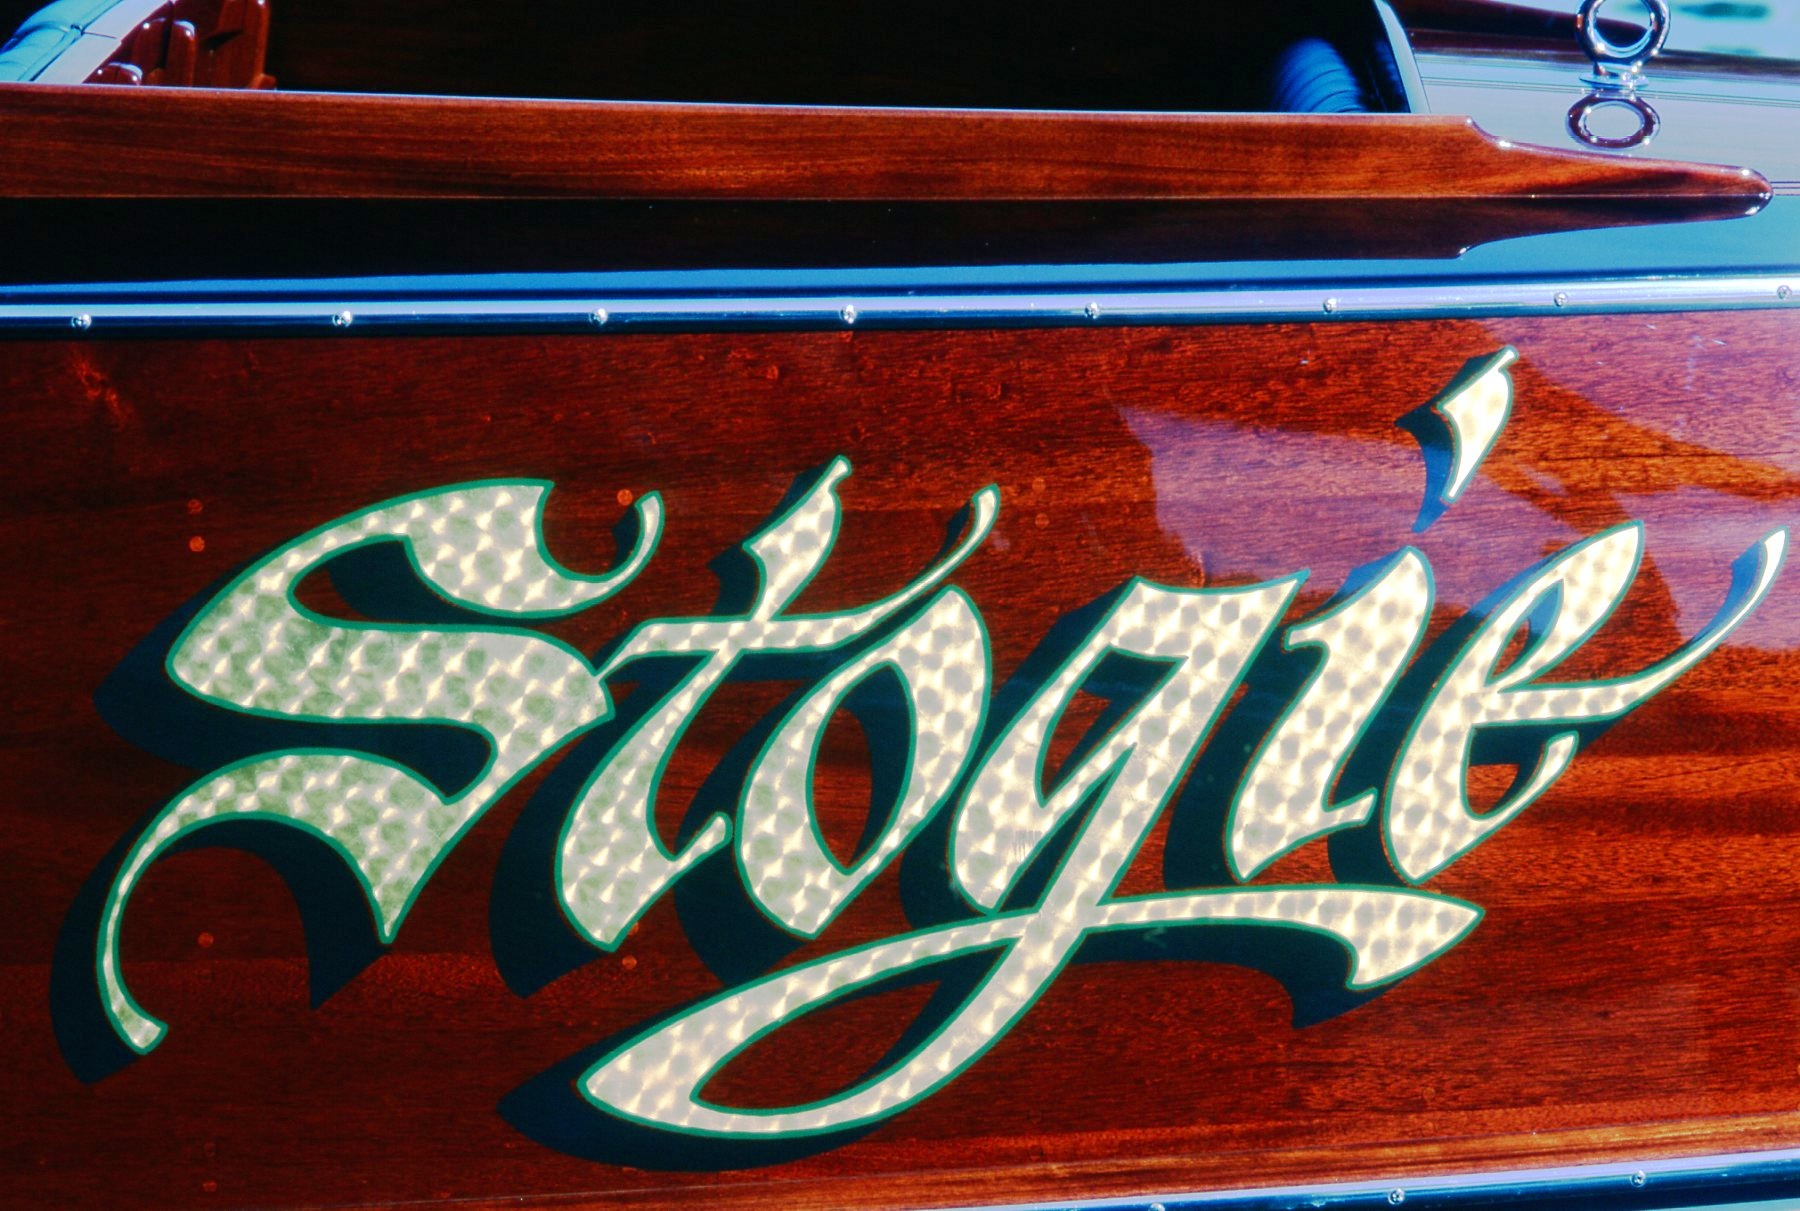 Hand painted name on Stogie